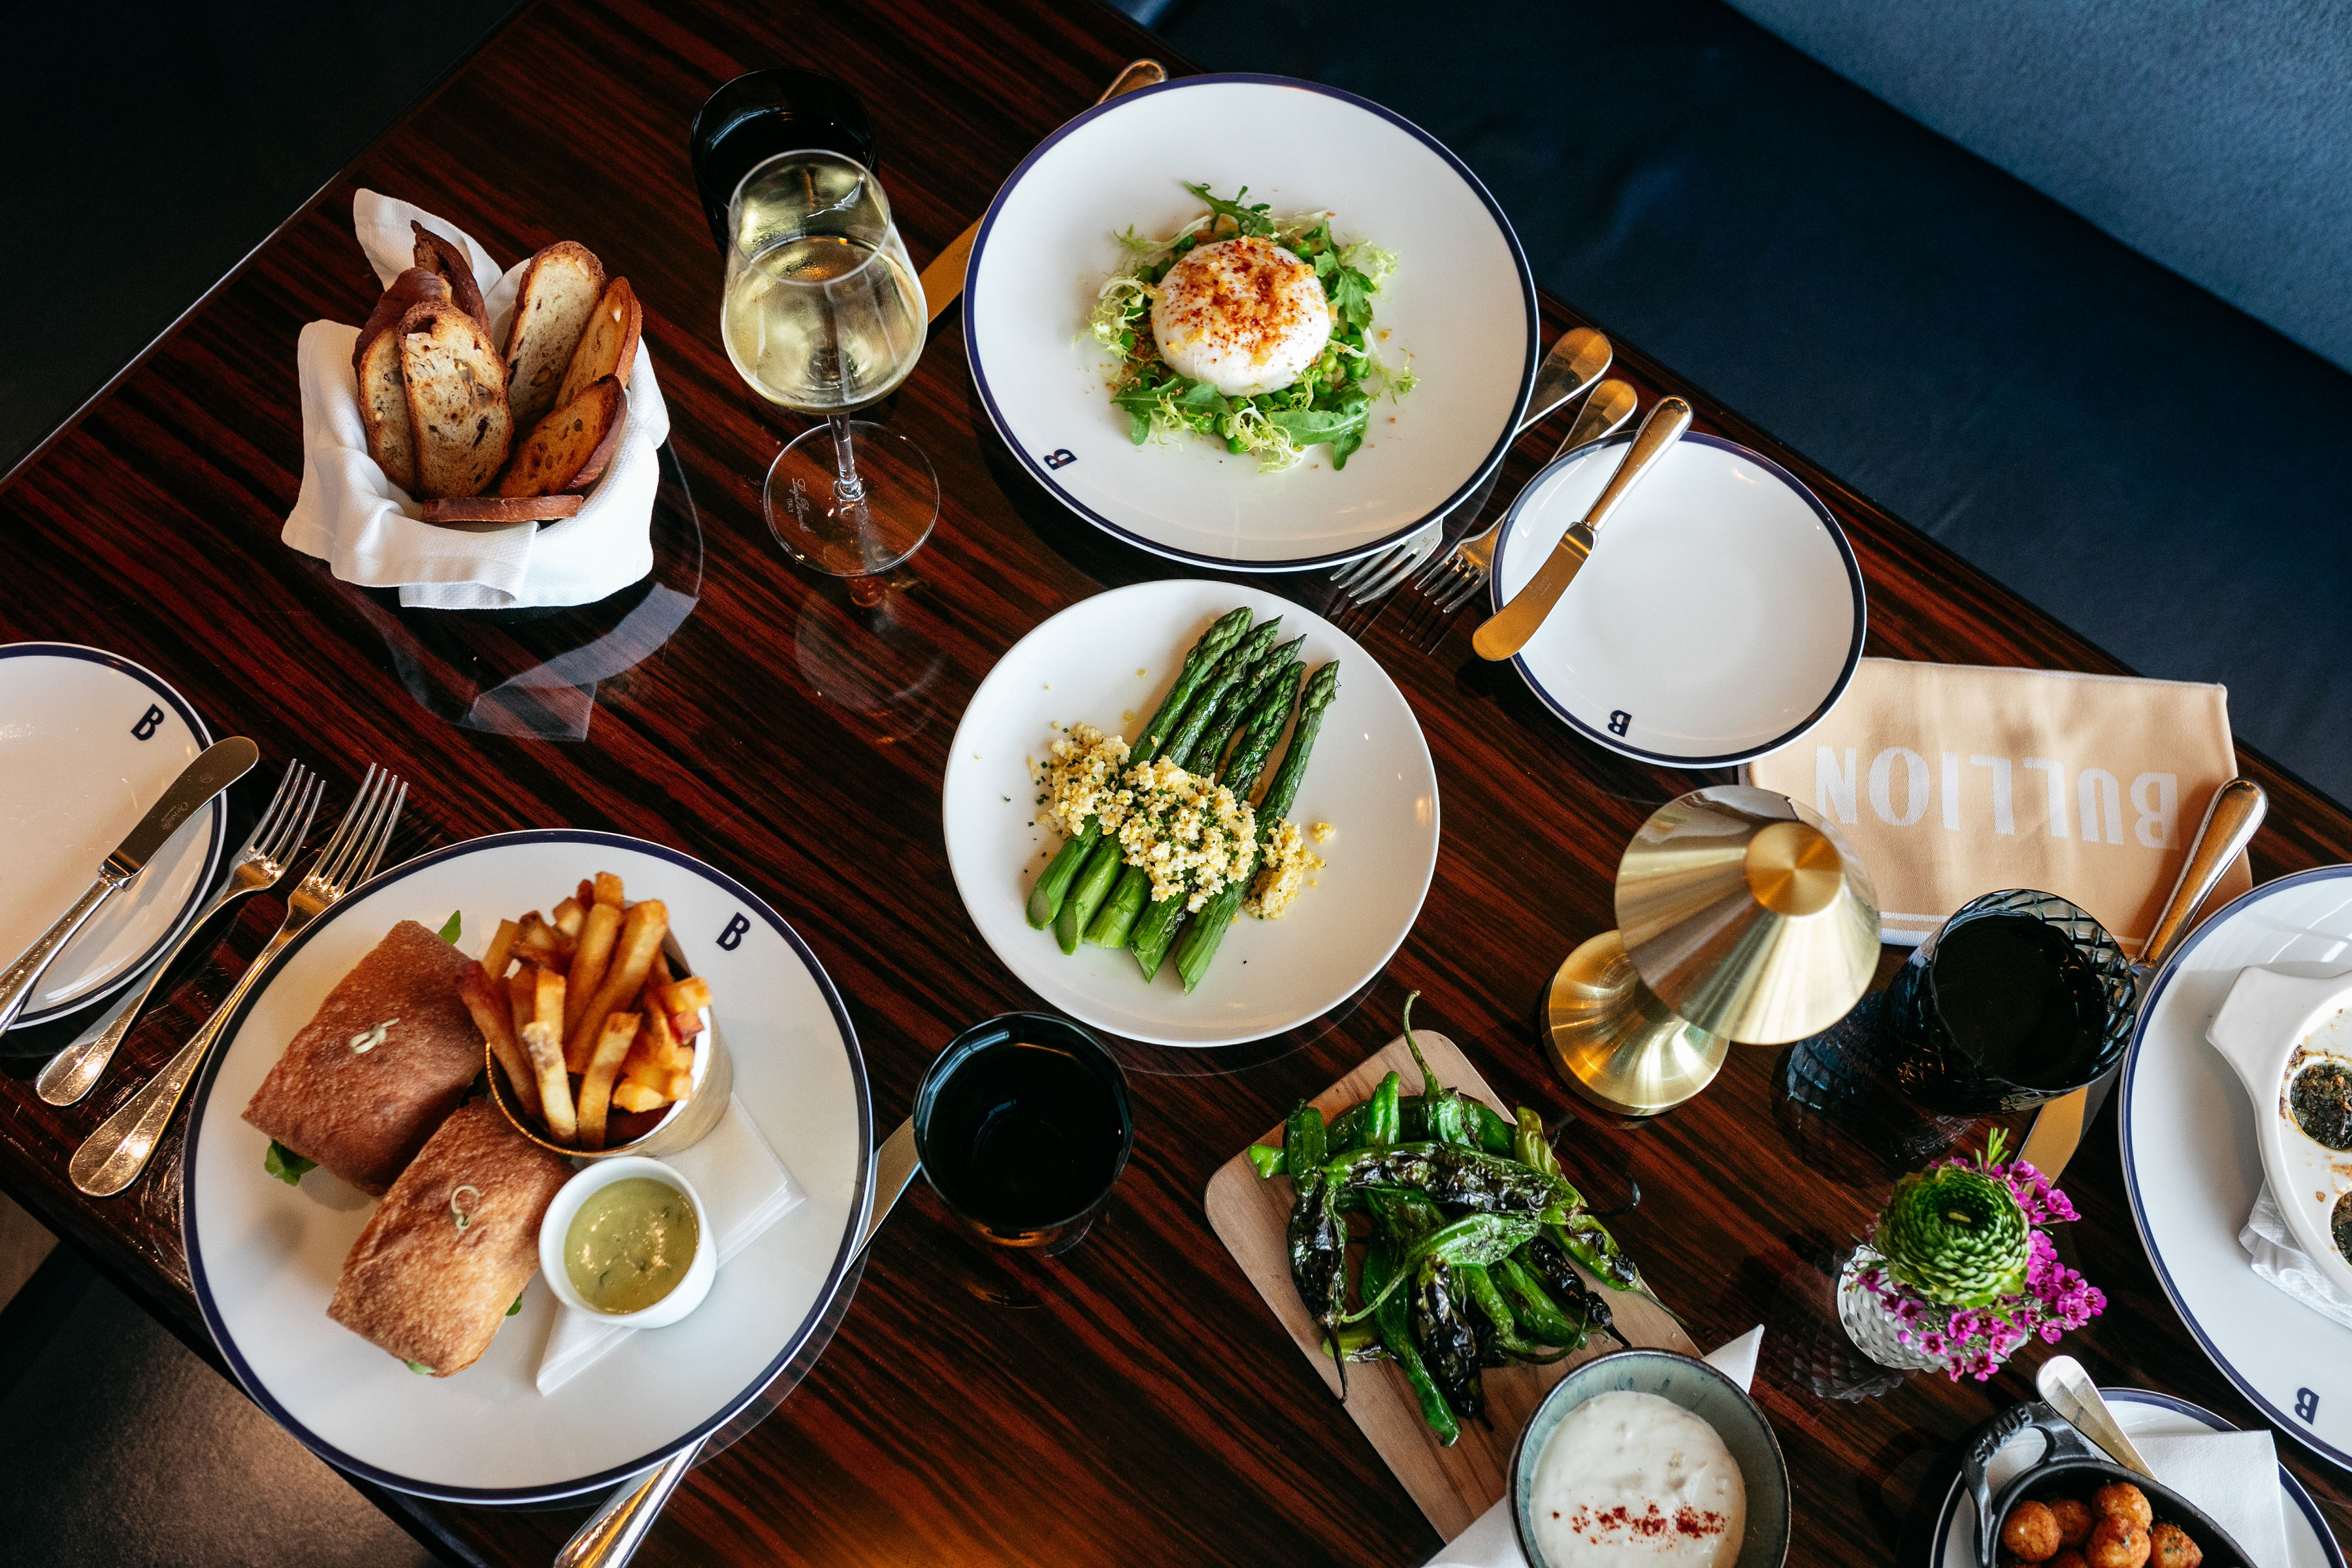 Where to Dine Near the Kay Bailey Hutchison Convention Center